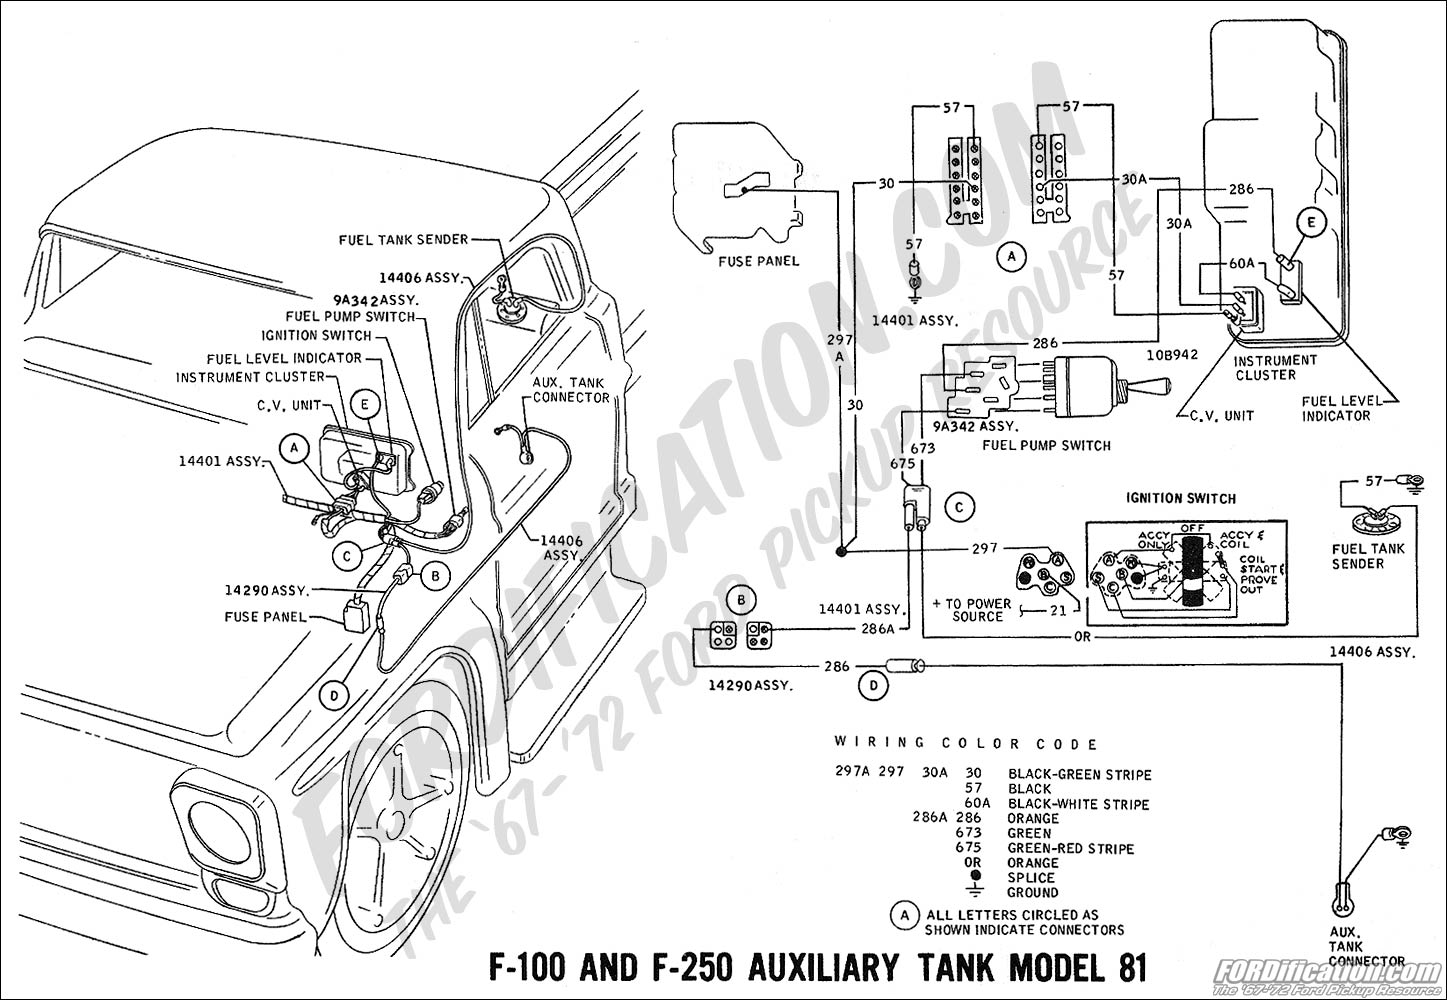 69 c10 fuse box ford truck technical drawings and schematics section h wiring  ford truck technical drawings and